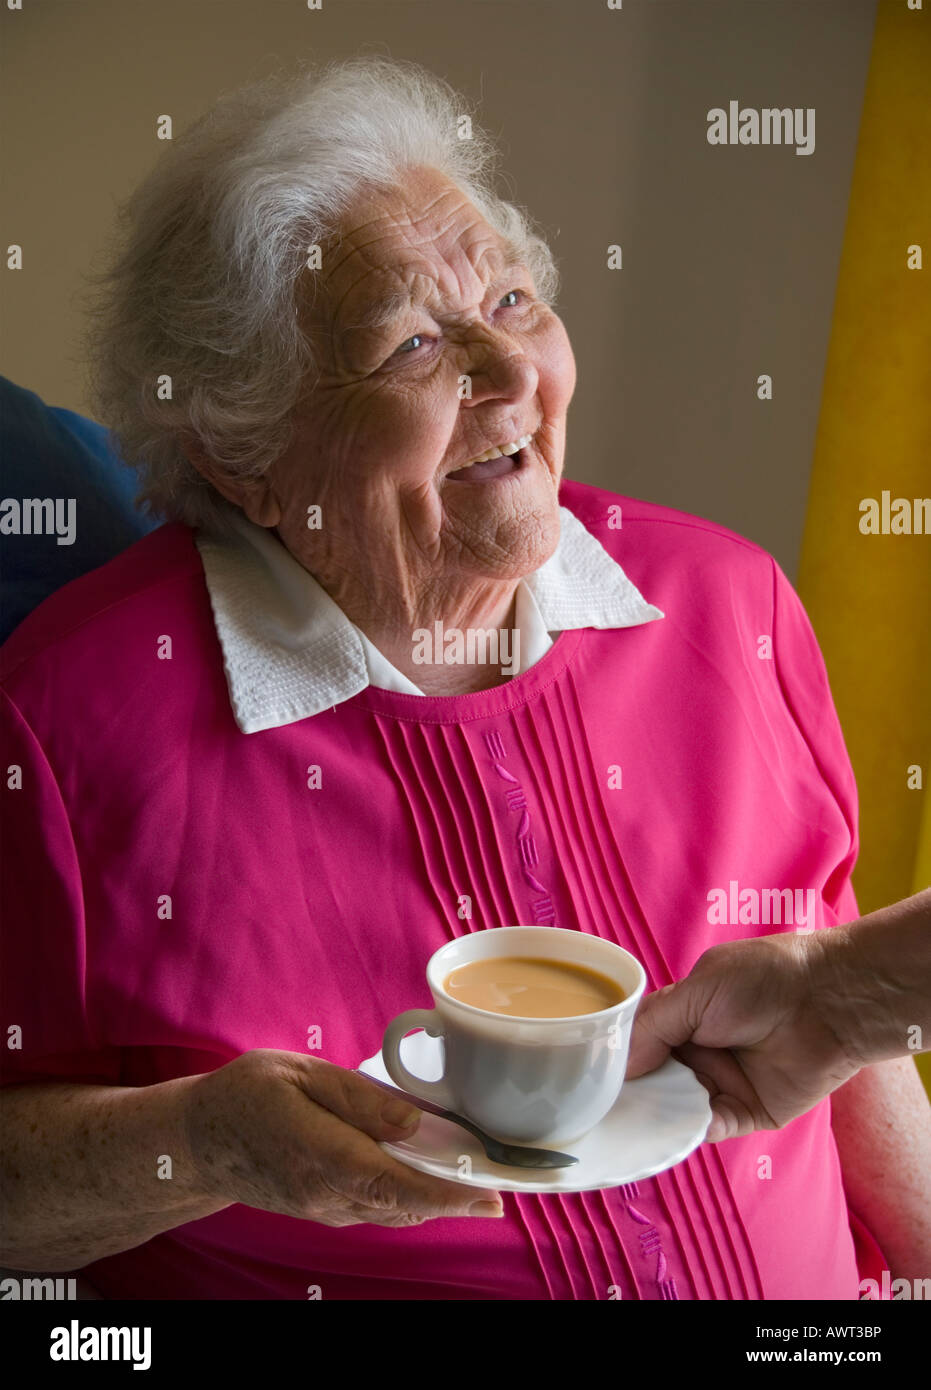 Happy senior old age pensioner elderly lady receives a cup of tea from carer companion - Stock Image